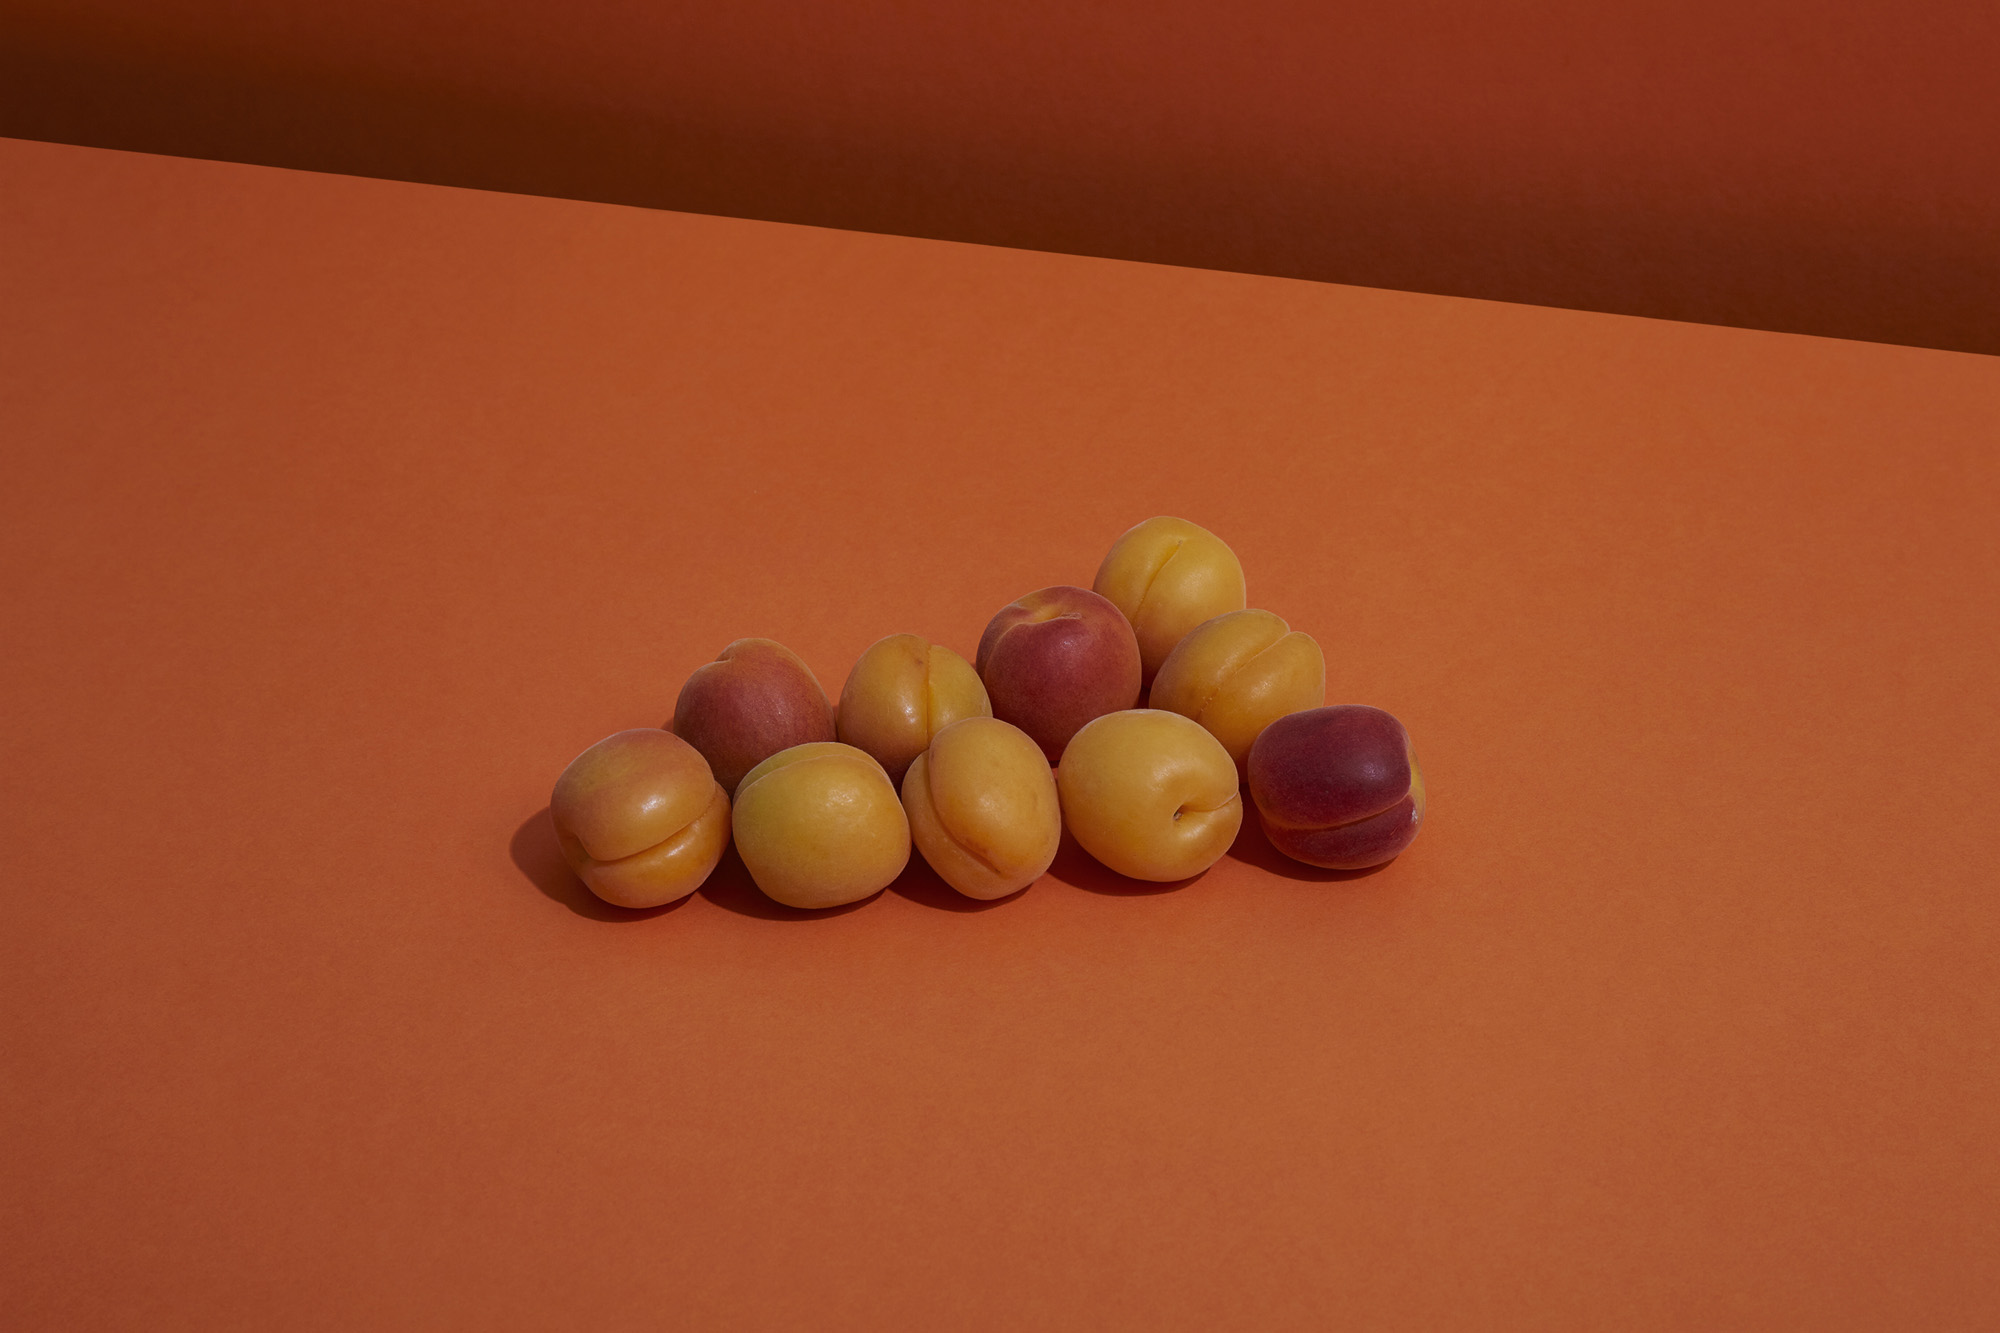 A still life image of fruit on a coloured background